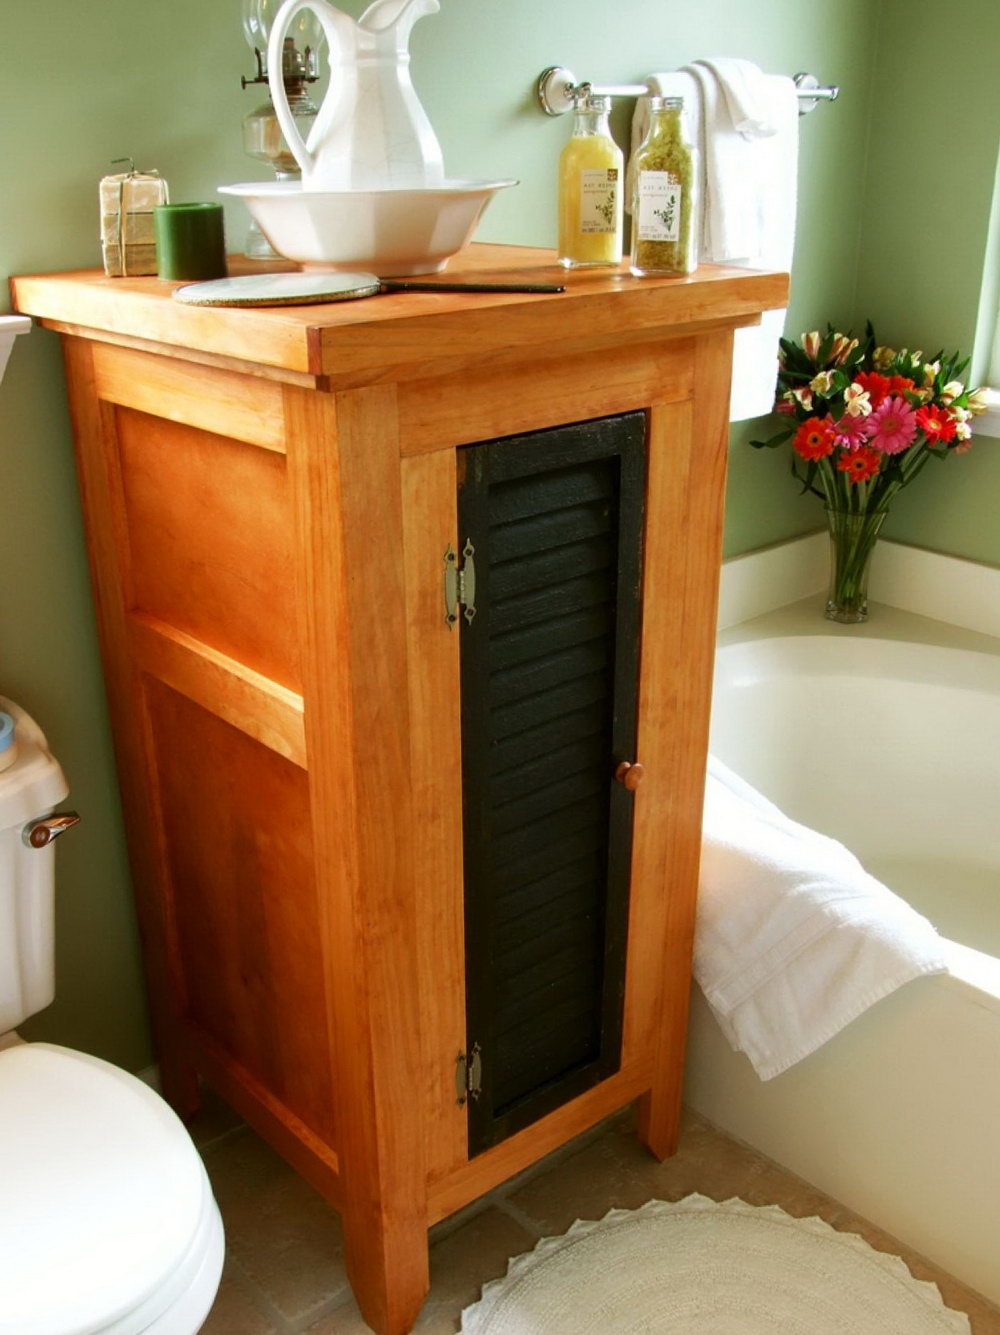 How To Build A Storage Cabinet Wood